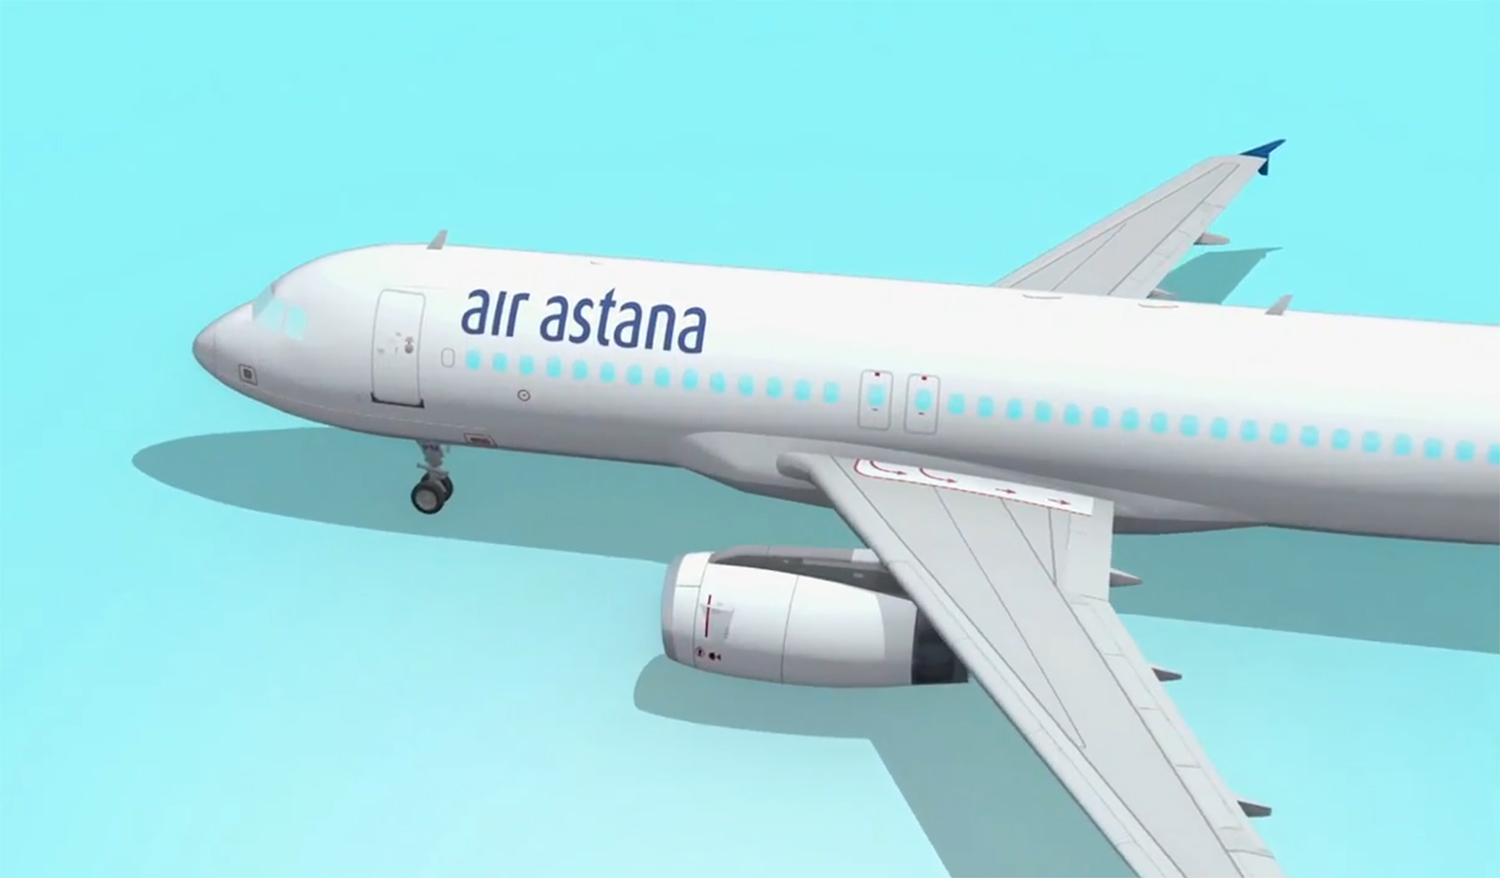 Air Astana welcomes you aboard. Safety video by FCB Almaty – Campaigns of the World